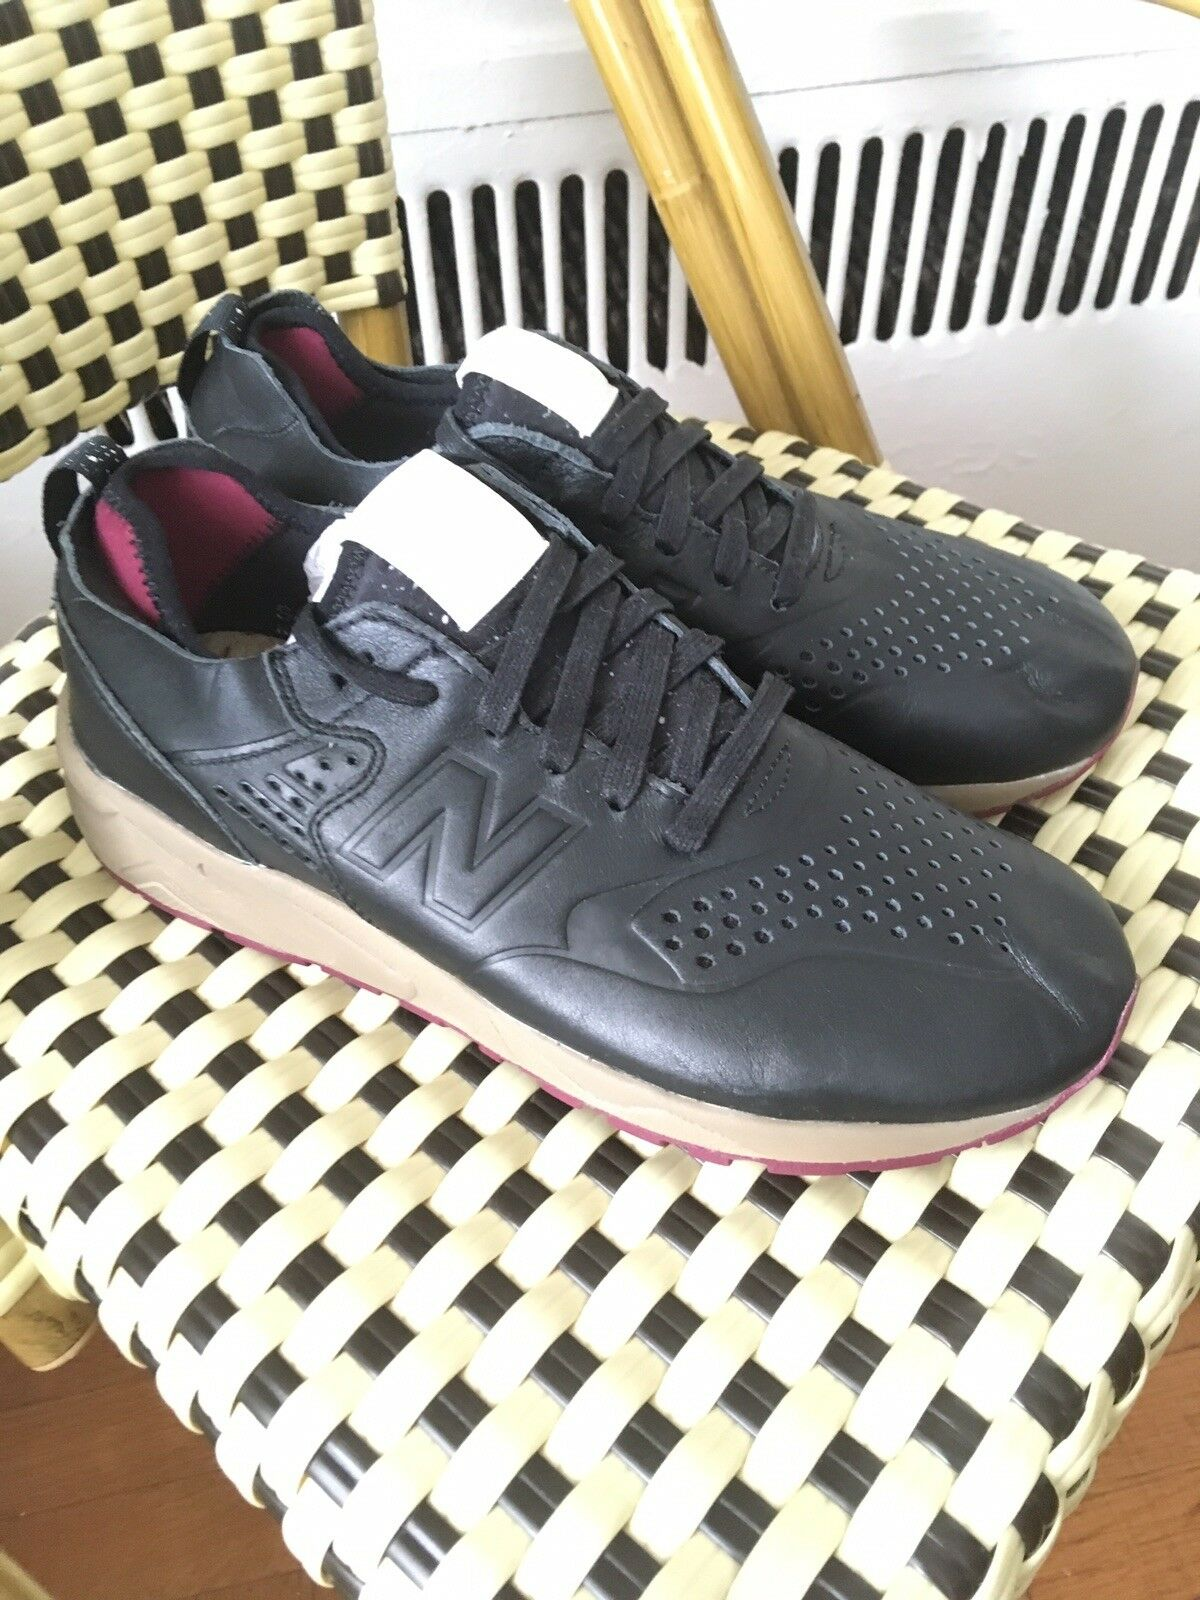 New Balance MRT 580 Leather Running Sneakers Size 9.5